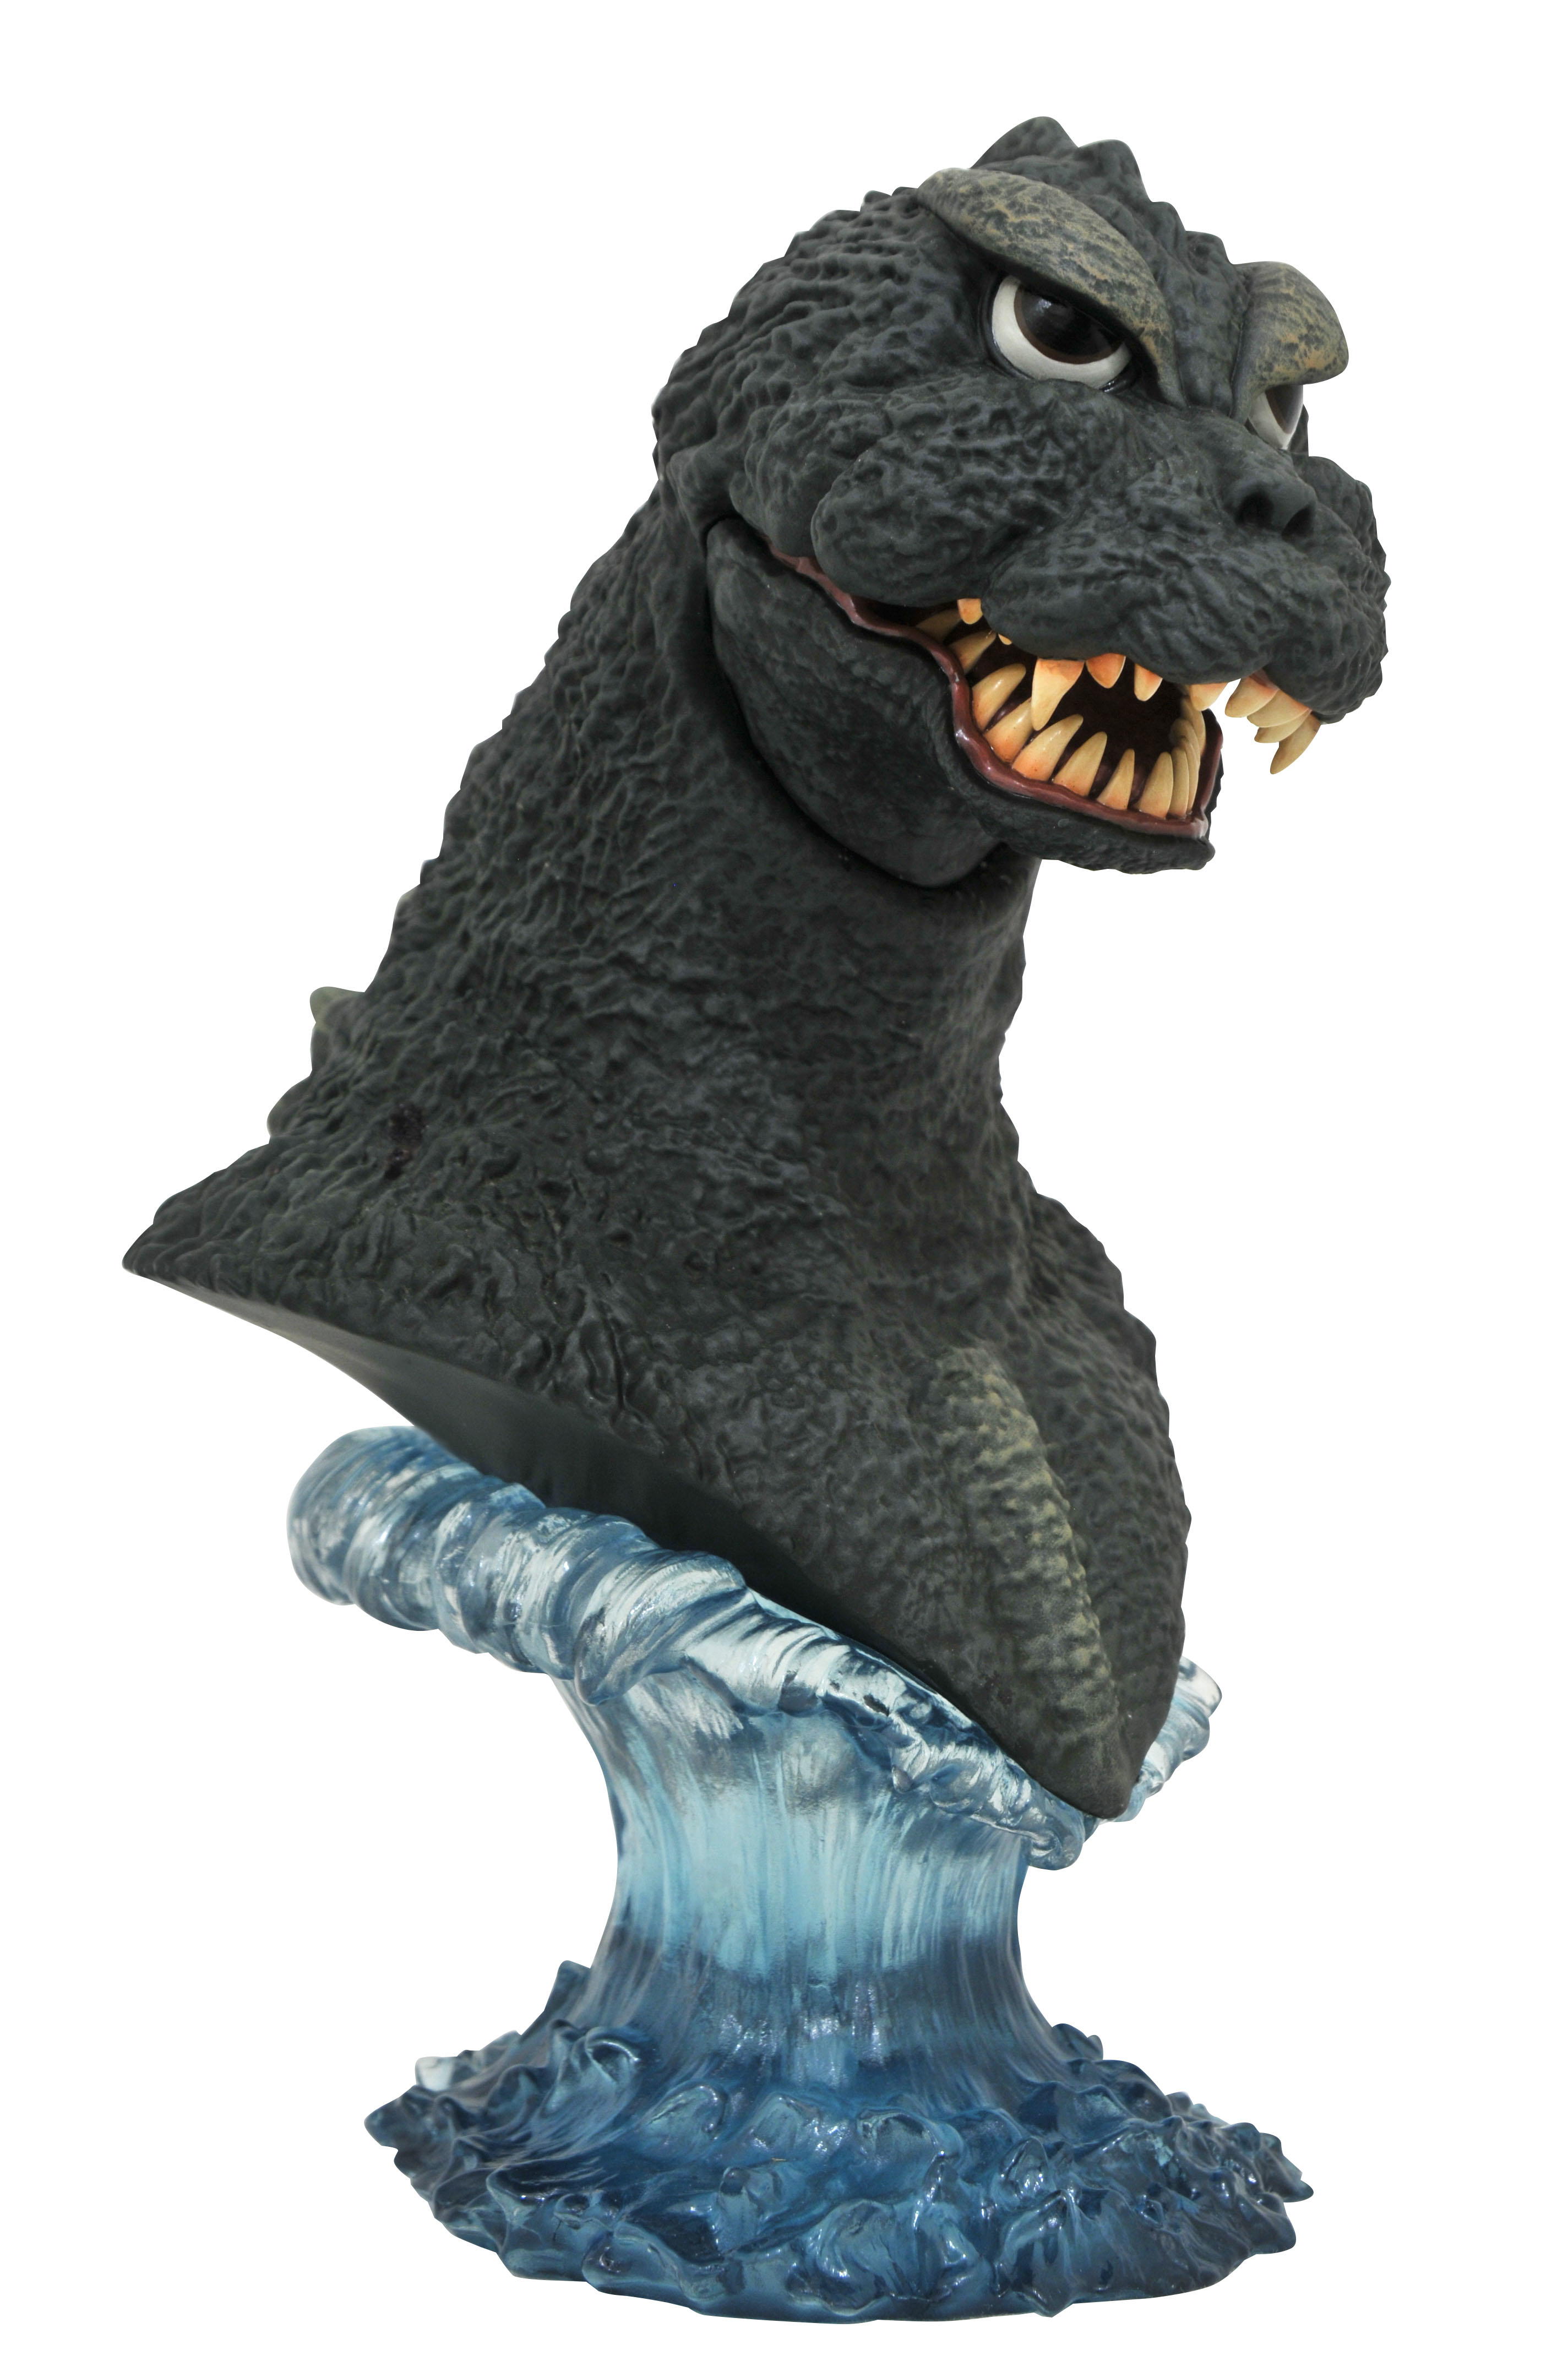 Legends in 3D - Godzilla 1964 1/2 Scale Bust